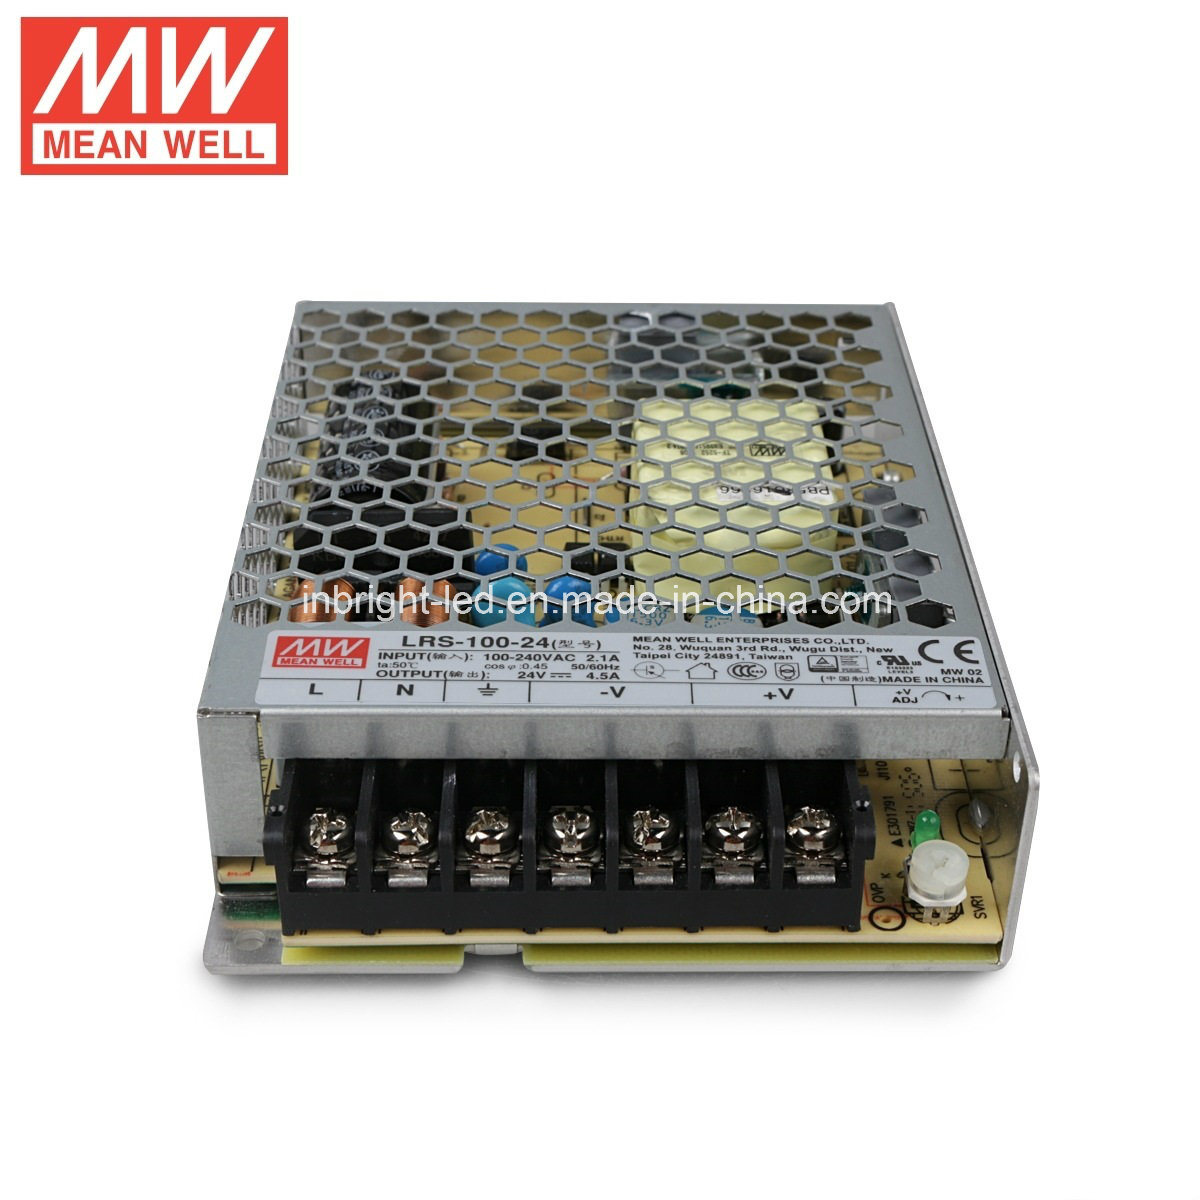 100W Lrs Series Meanwell LED Power Supply/Driver/Transformer